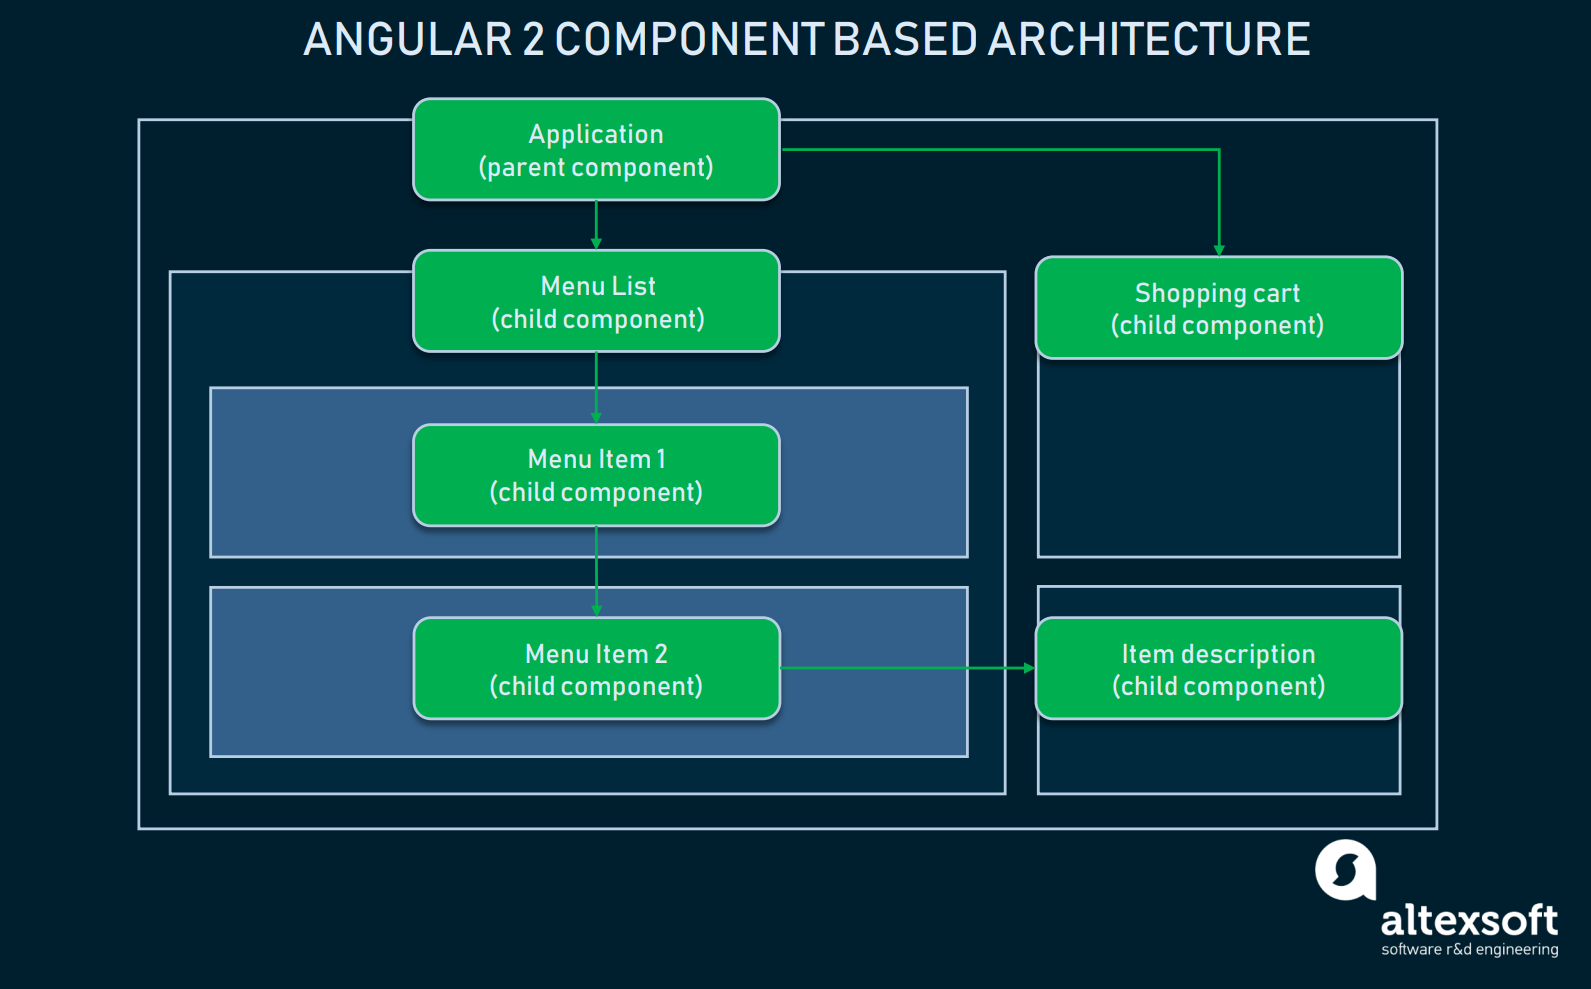 component based architecture angular 2